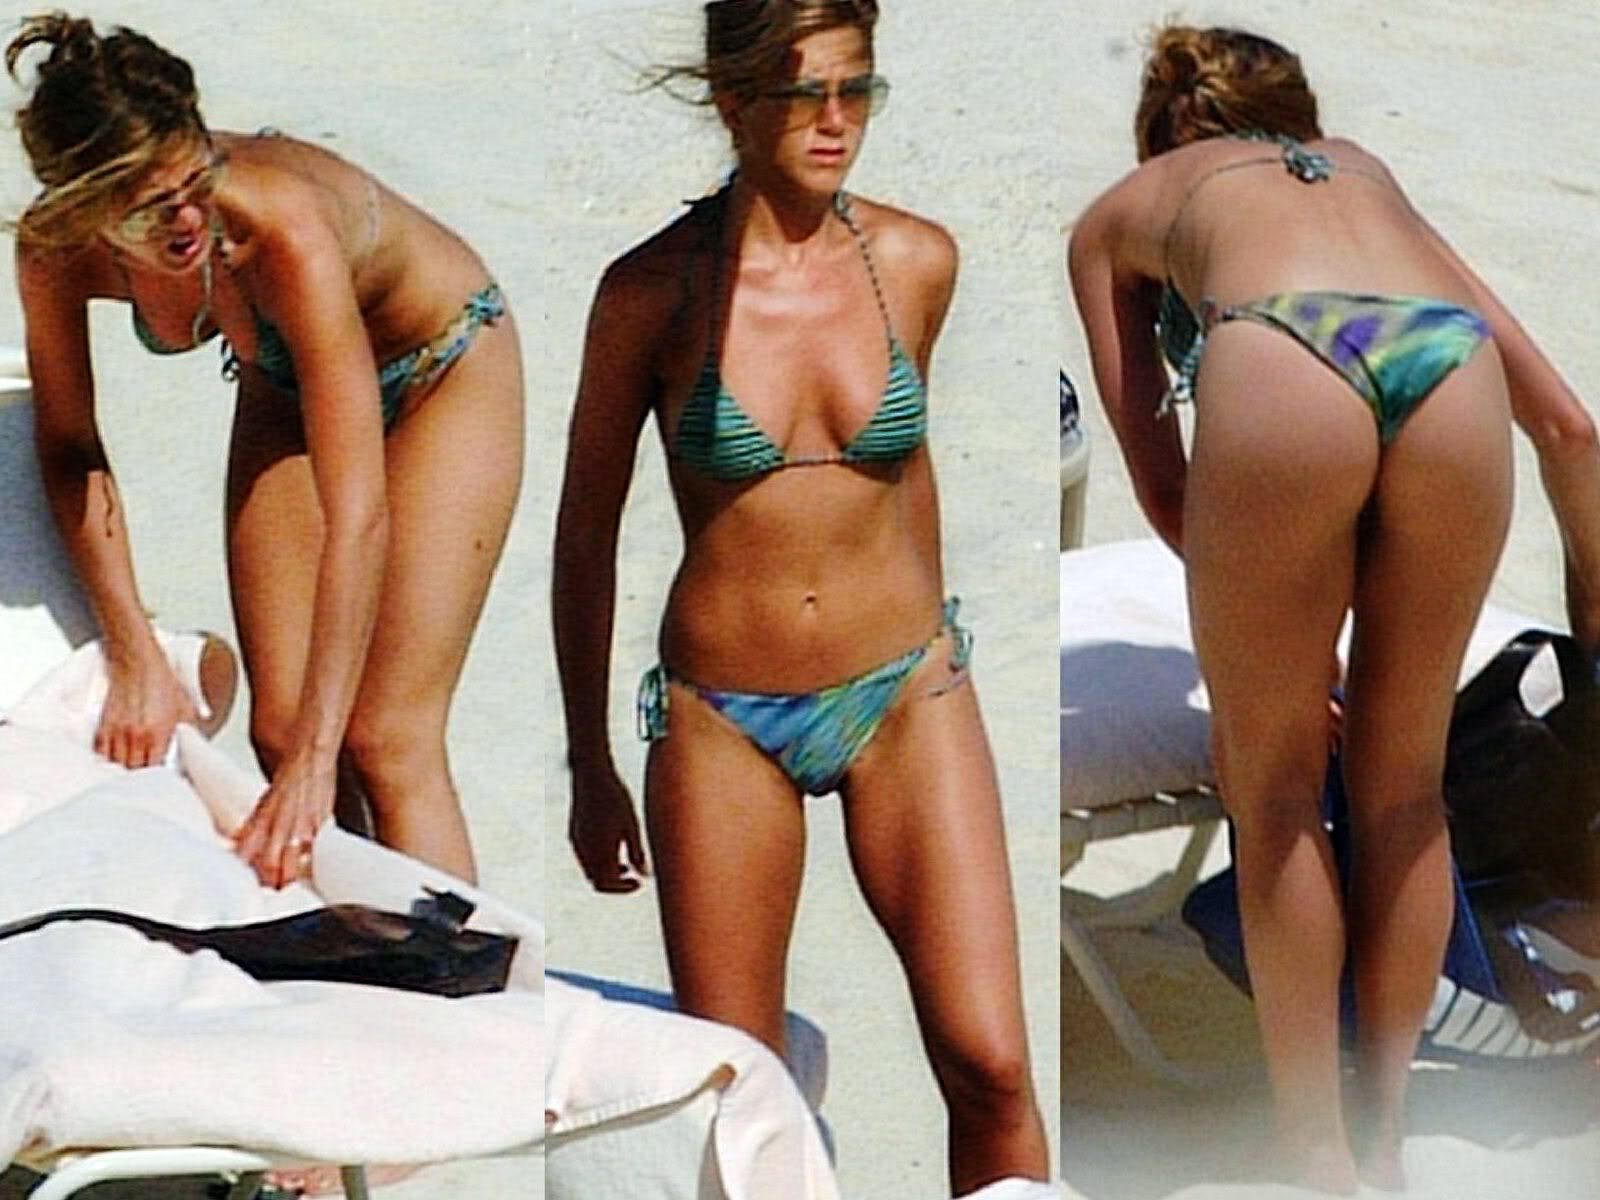 jennifer aniston bikini Hot Jennifer Aniston in Bikini